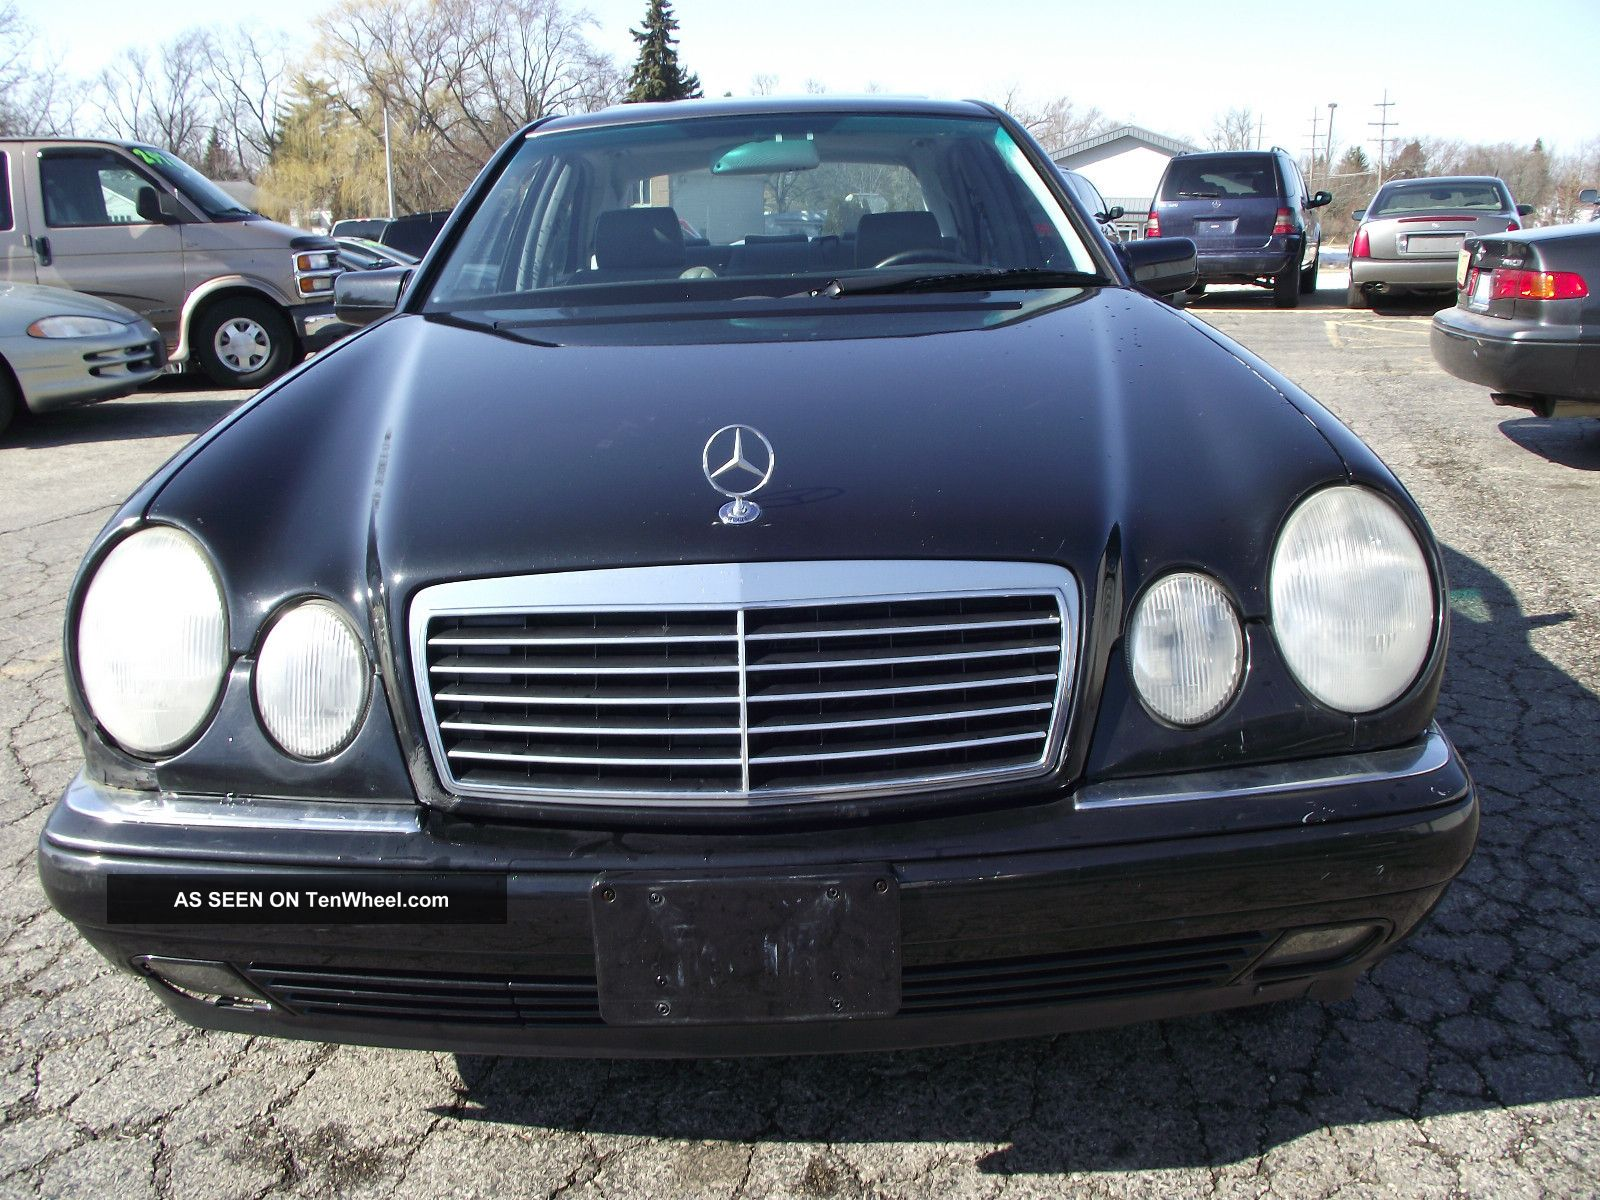 1999 mercedes benz e430 runs well books some rust